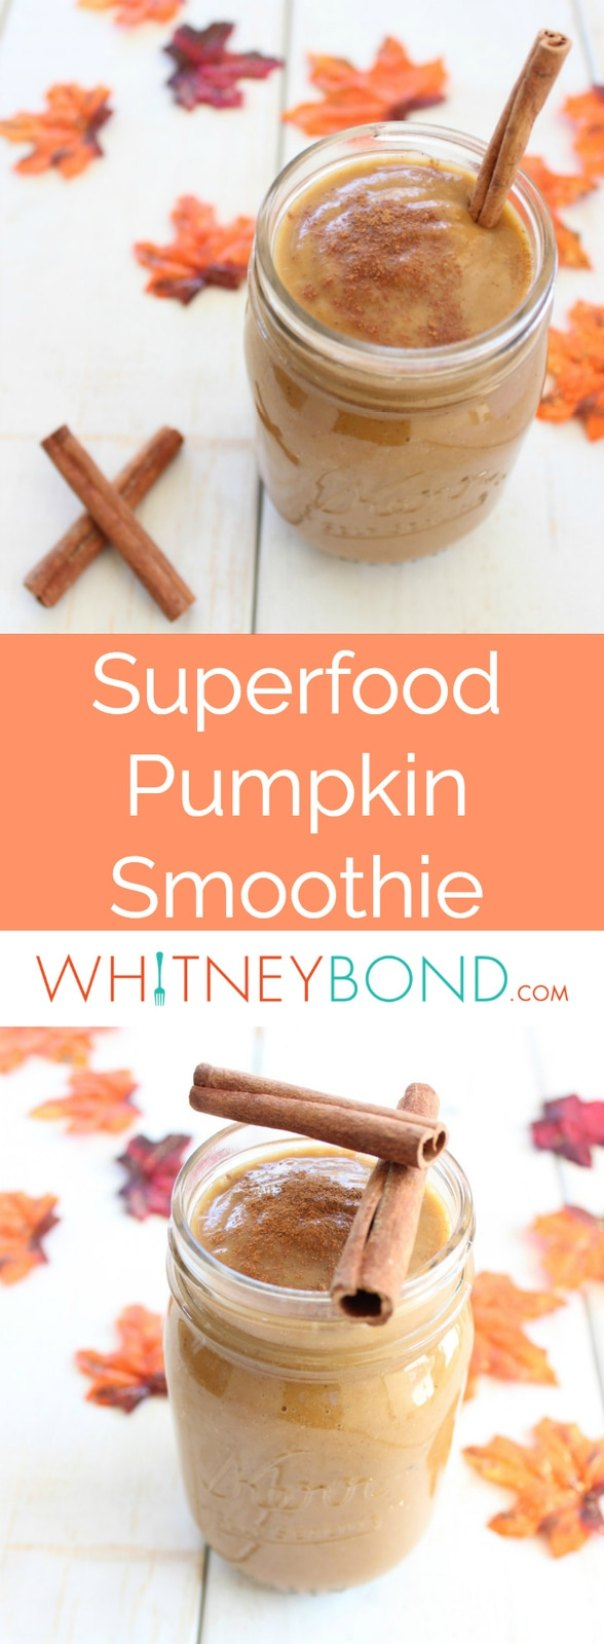 The perfect way to welcome in the fall season, this superfood pumpkin smoothie is both healthy and delicious, rich in potassium and vitamins, and gluten free and vegan!